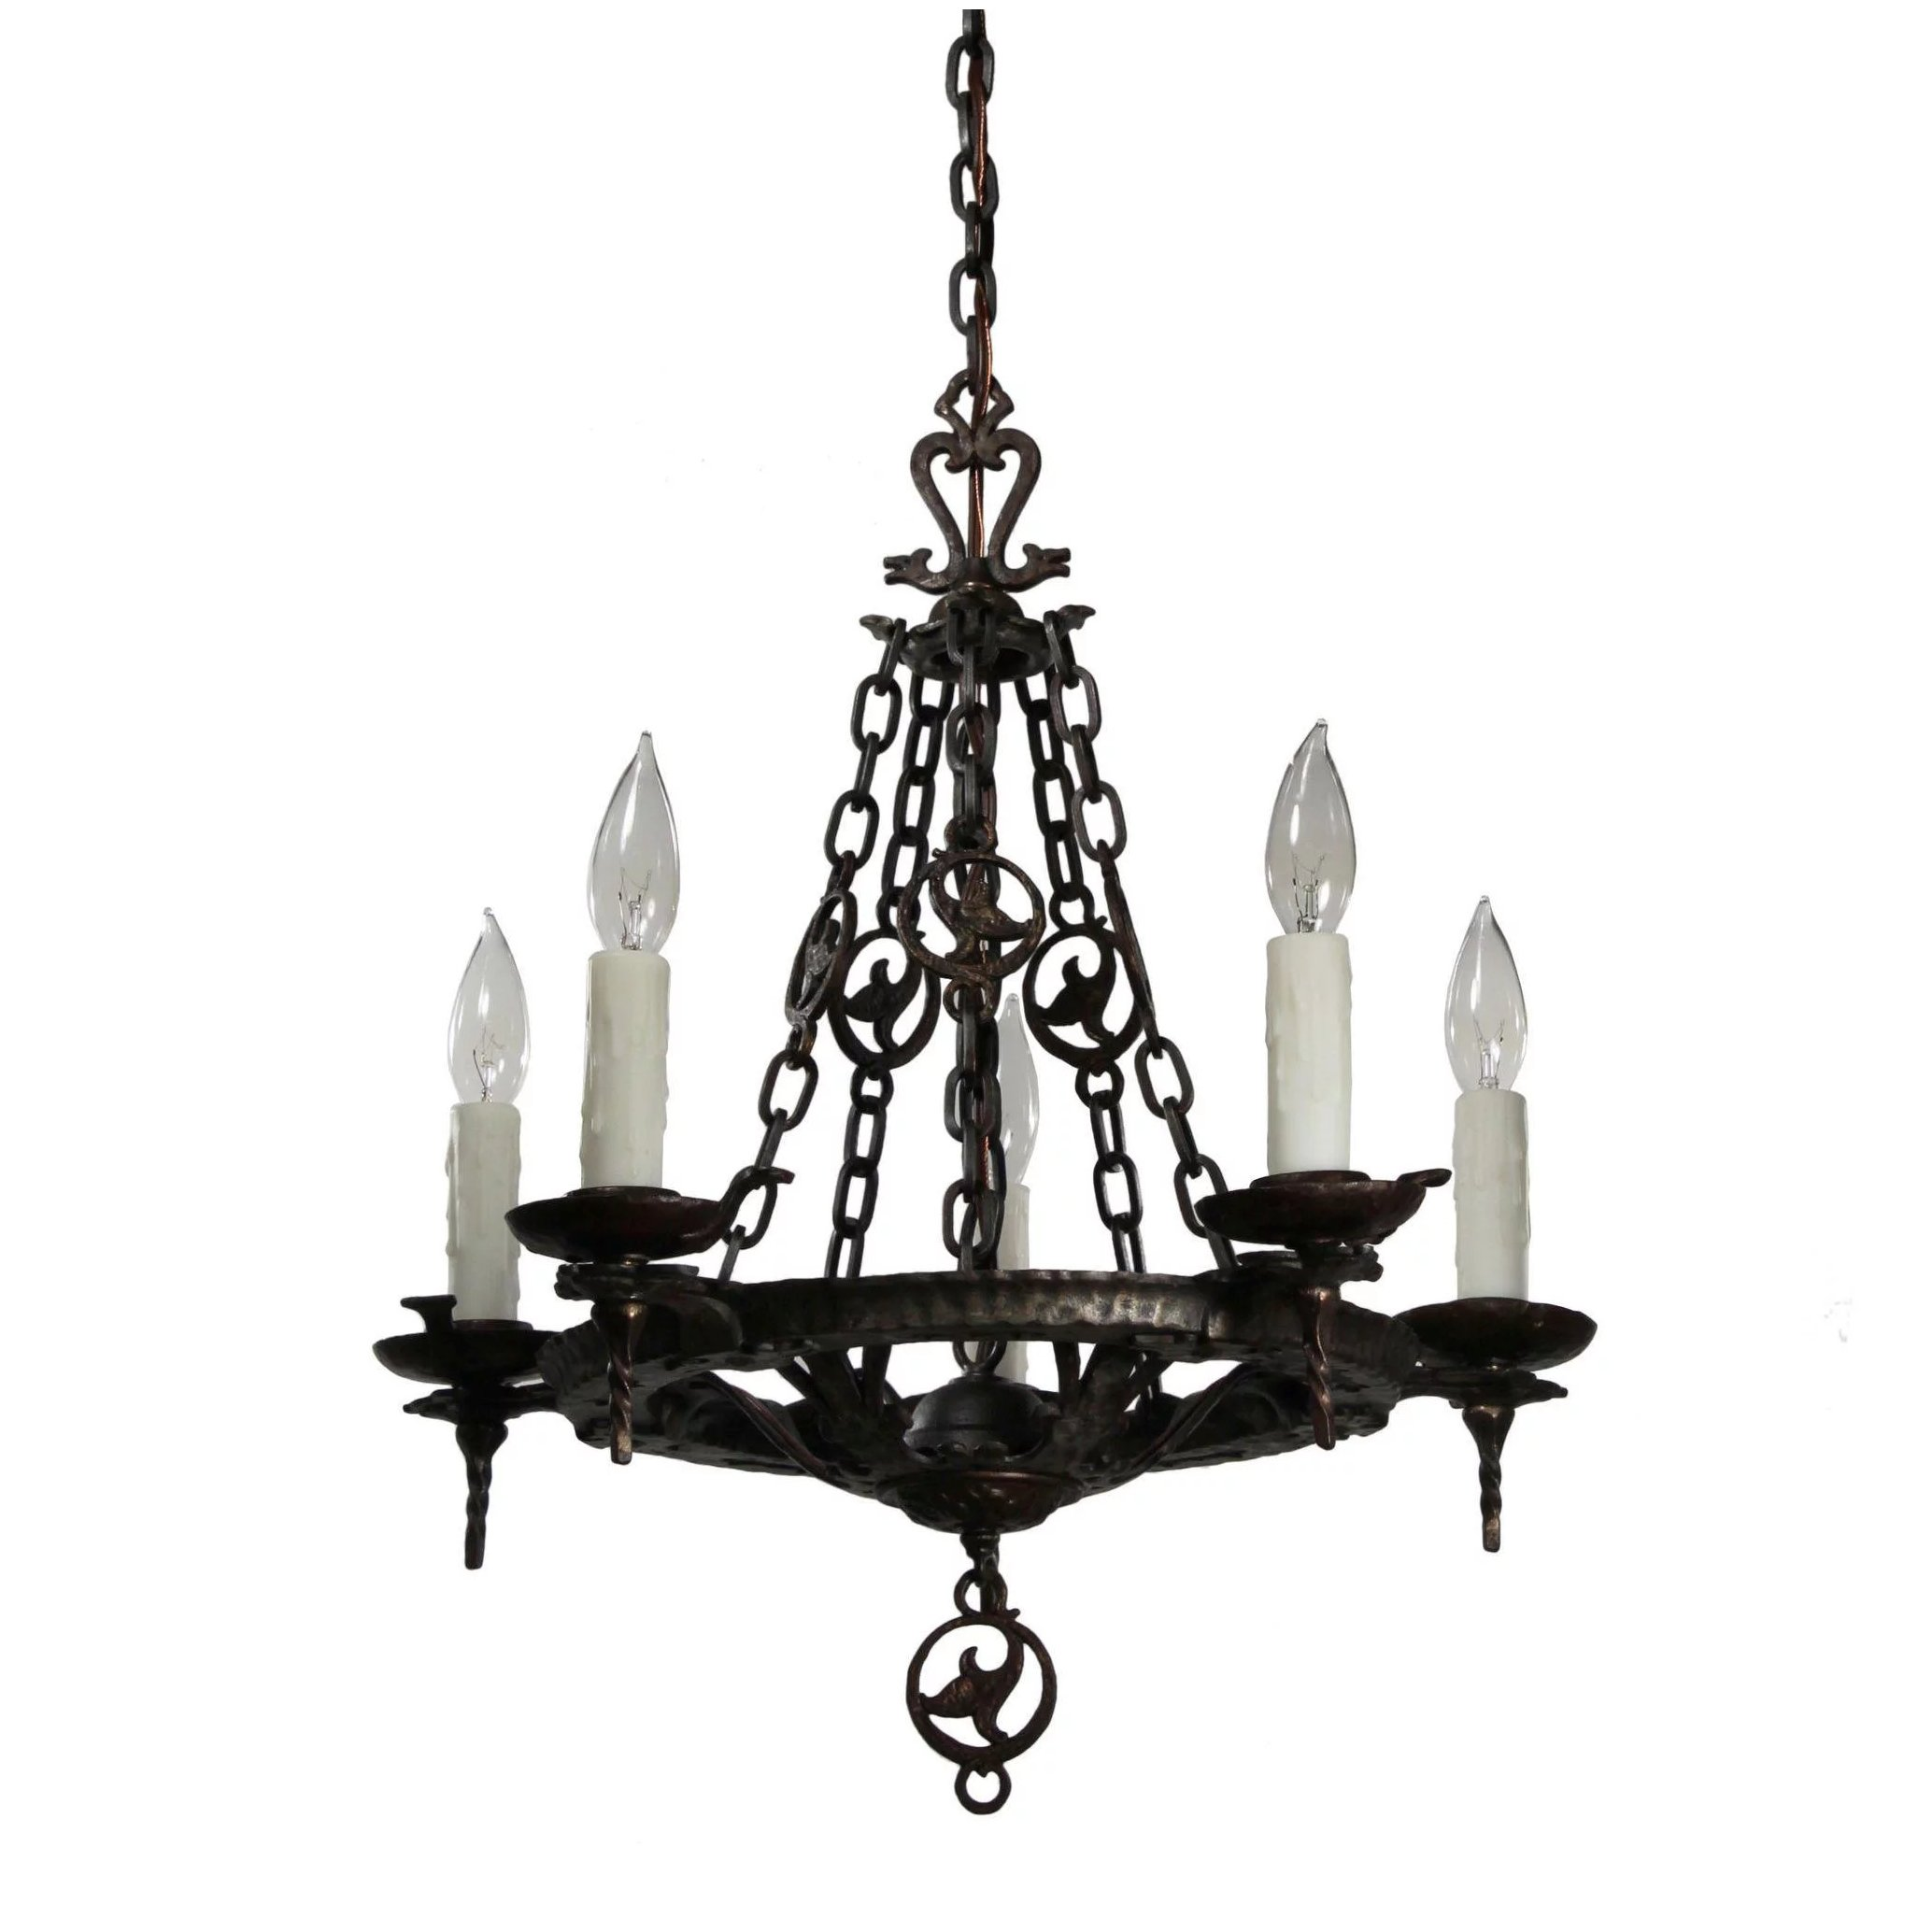 Antique tudor chandelier in cast iron by virden preservation click to expand aloadofball Choice Image